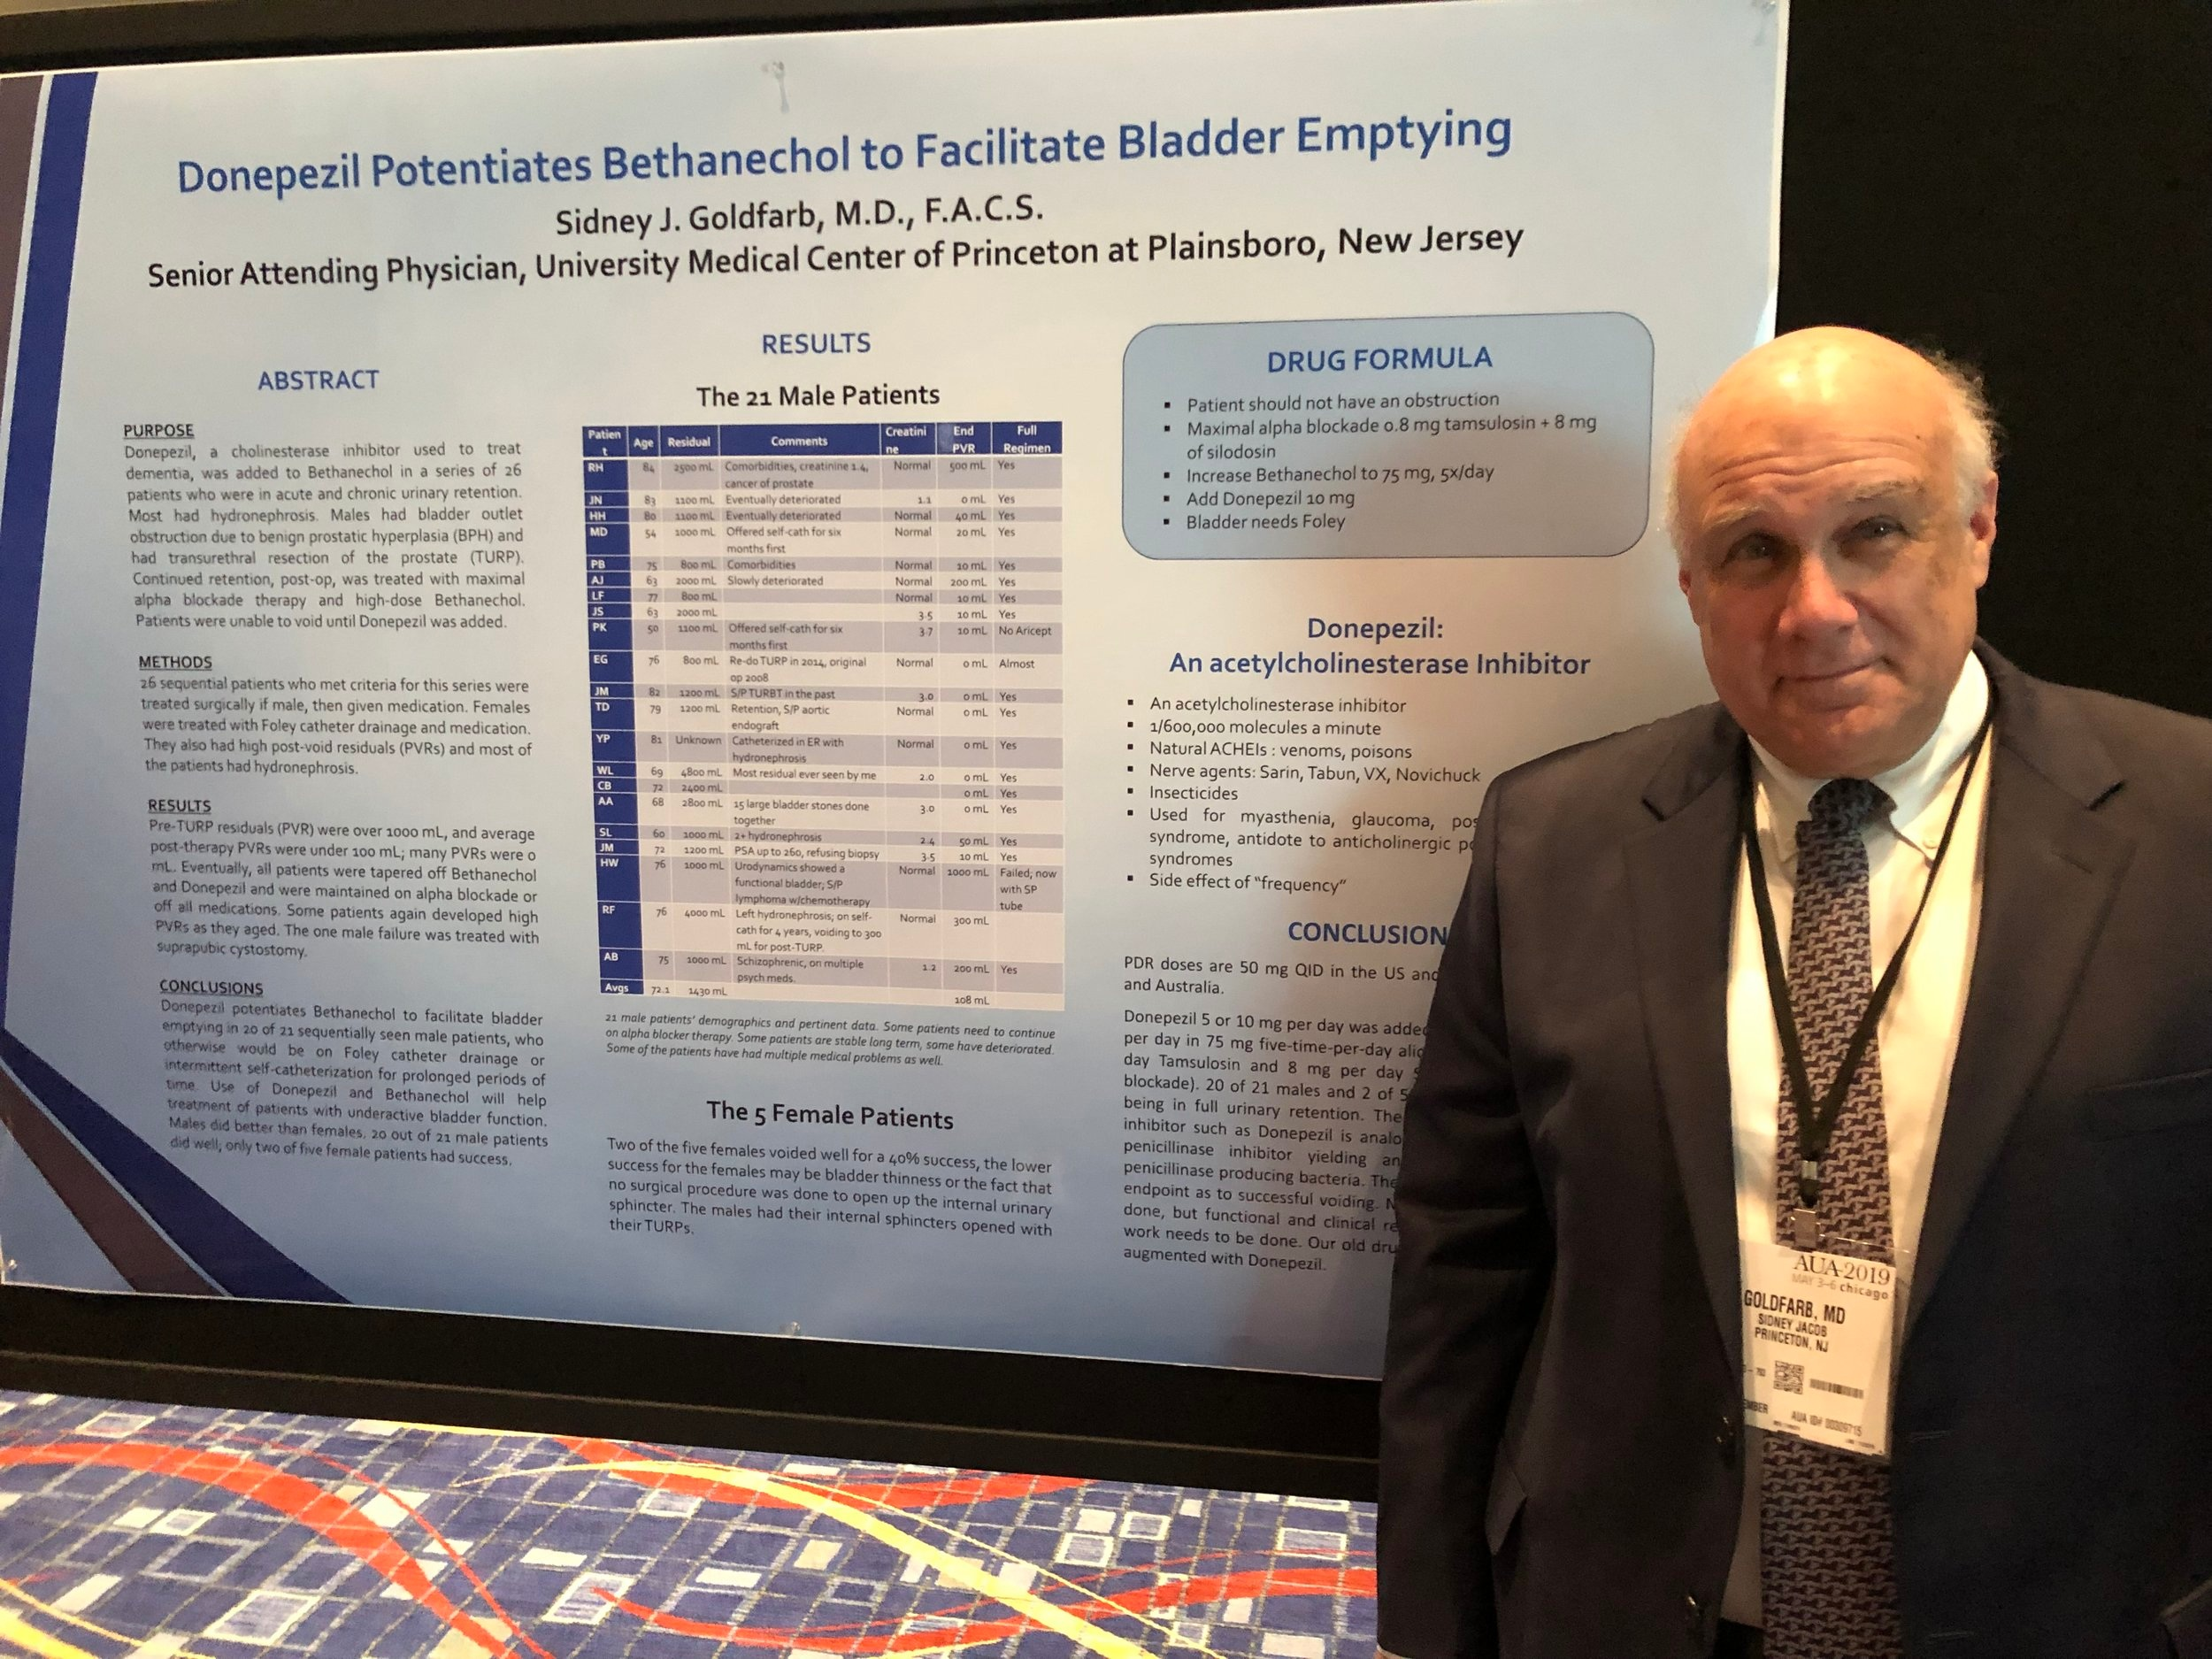 Dr. Goldfarb presenting his patented drug solution for urinary retention at the AUA 2019 conference in Chicago